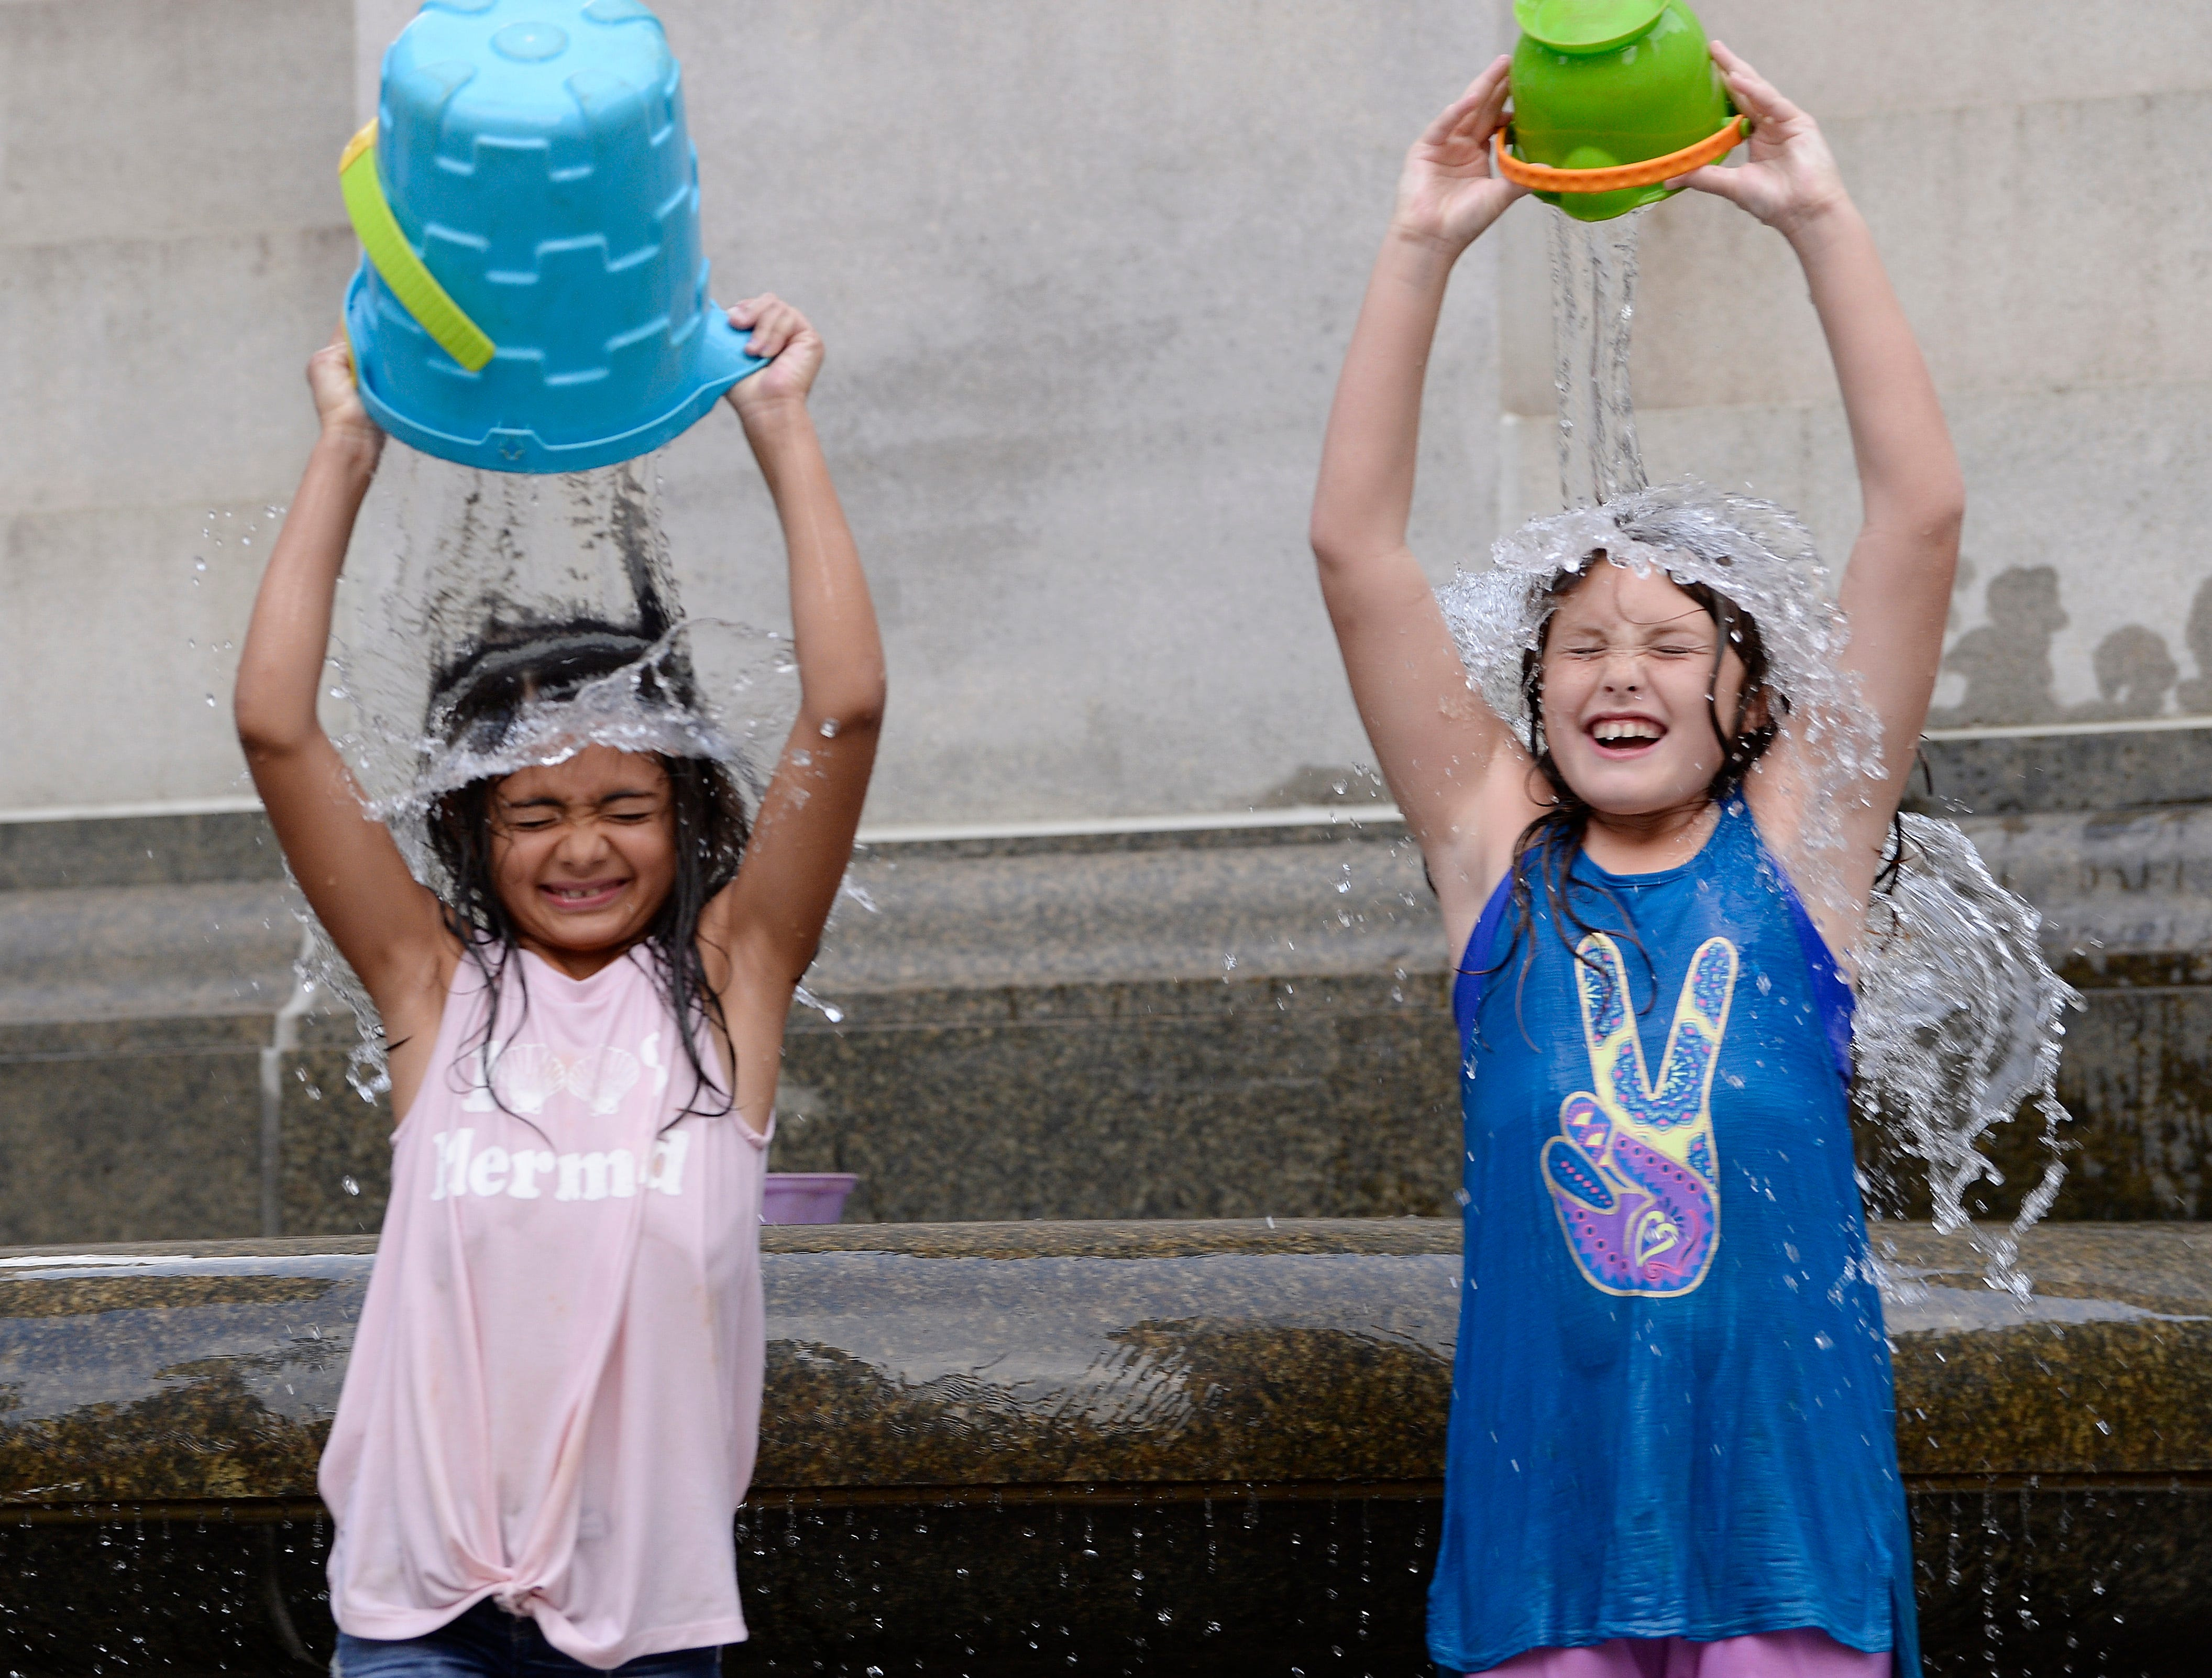 Gia Kahan, left, 8, and her sister Leora Kahan, 8, of Huntington Woods play in the water near the Michigan Soldier's and Sailors monument at Campus Martius in Detroit, July, 16, 2018.